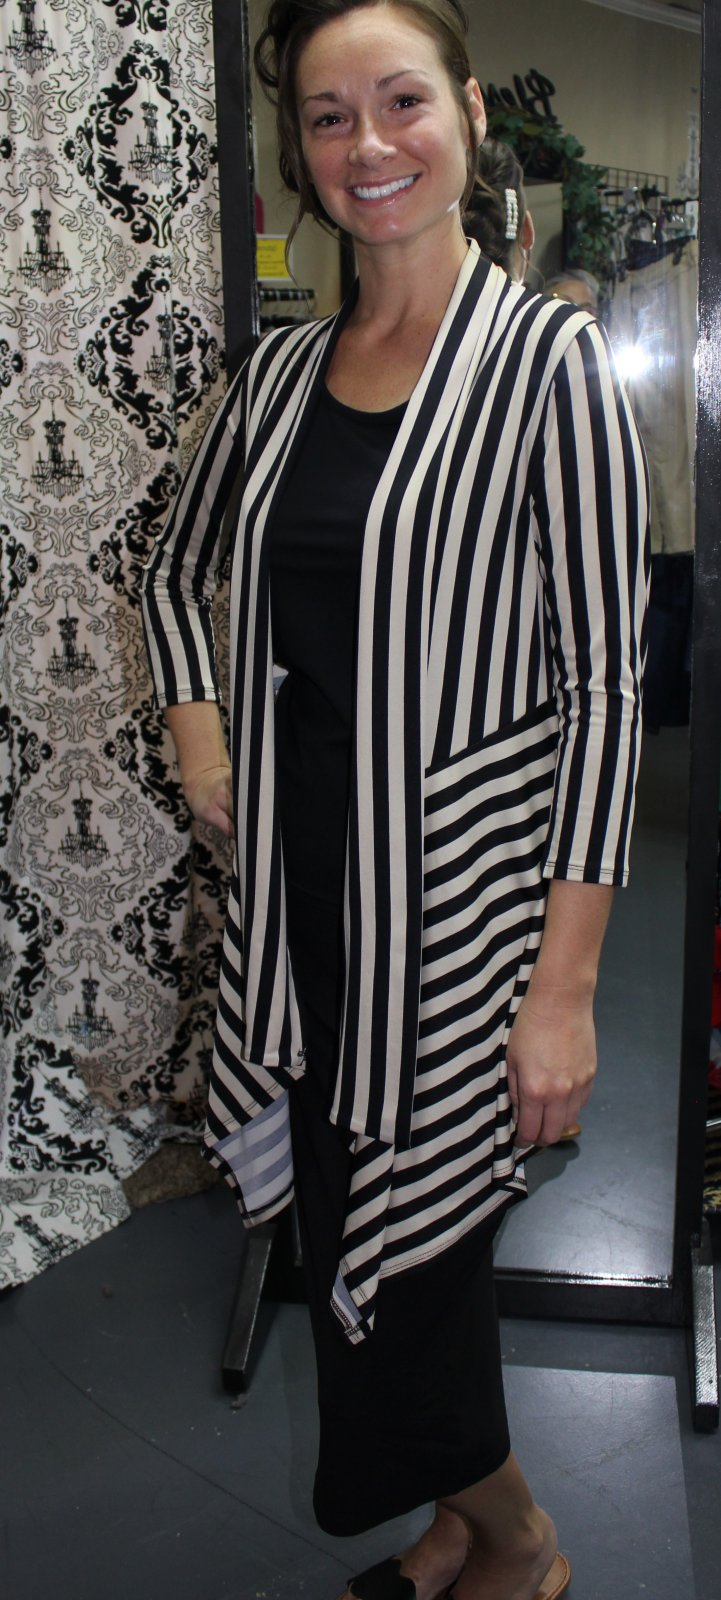 Beige and Black Striped Cardigan, Pretty Woman